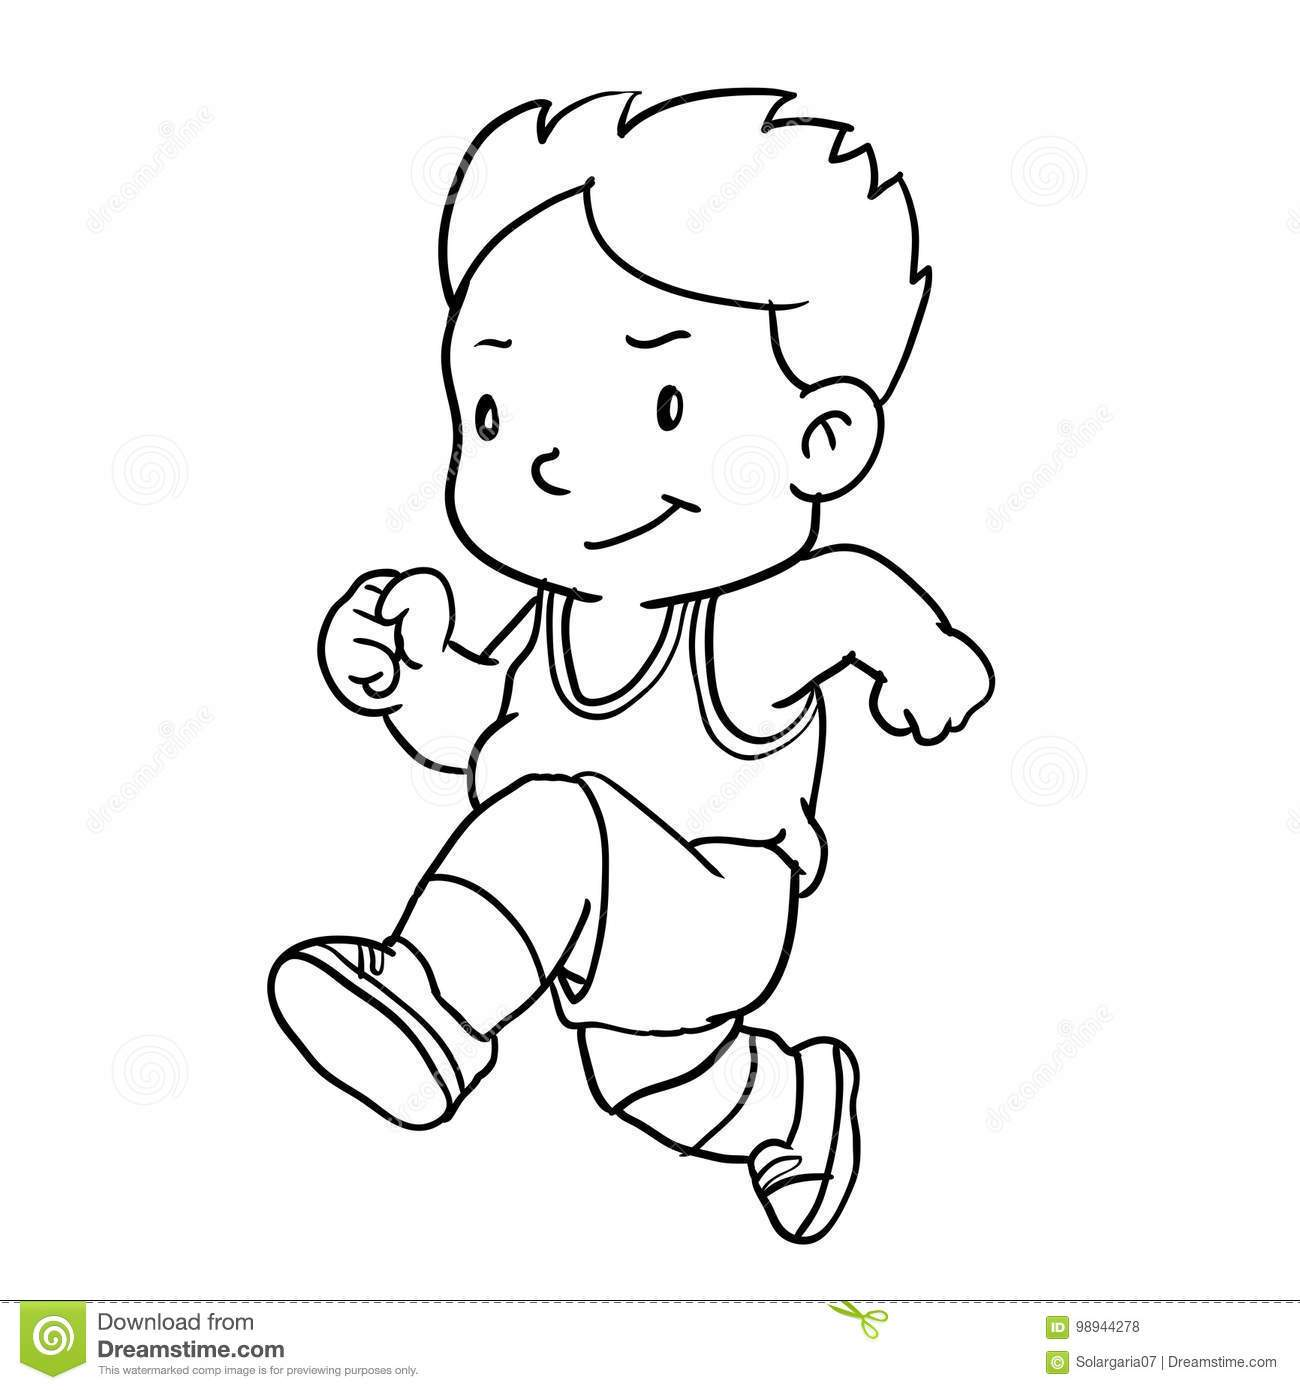 Child drawing clipart black and white 2 » Clipart Portal.